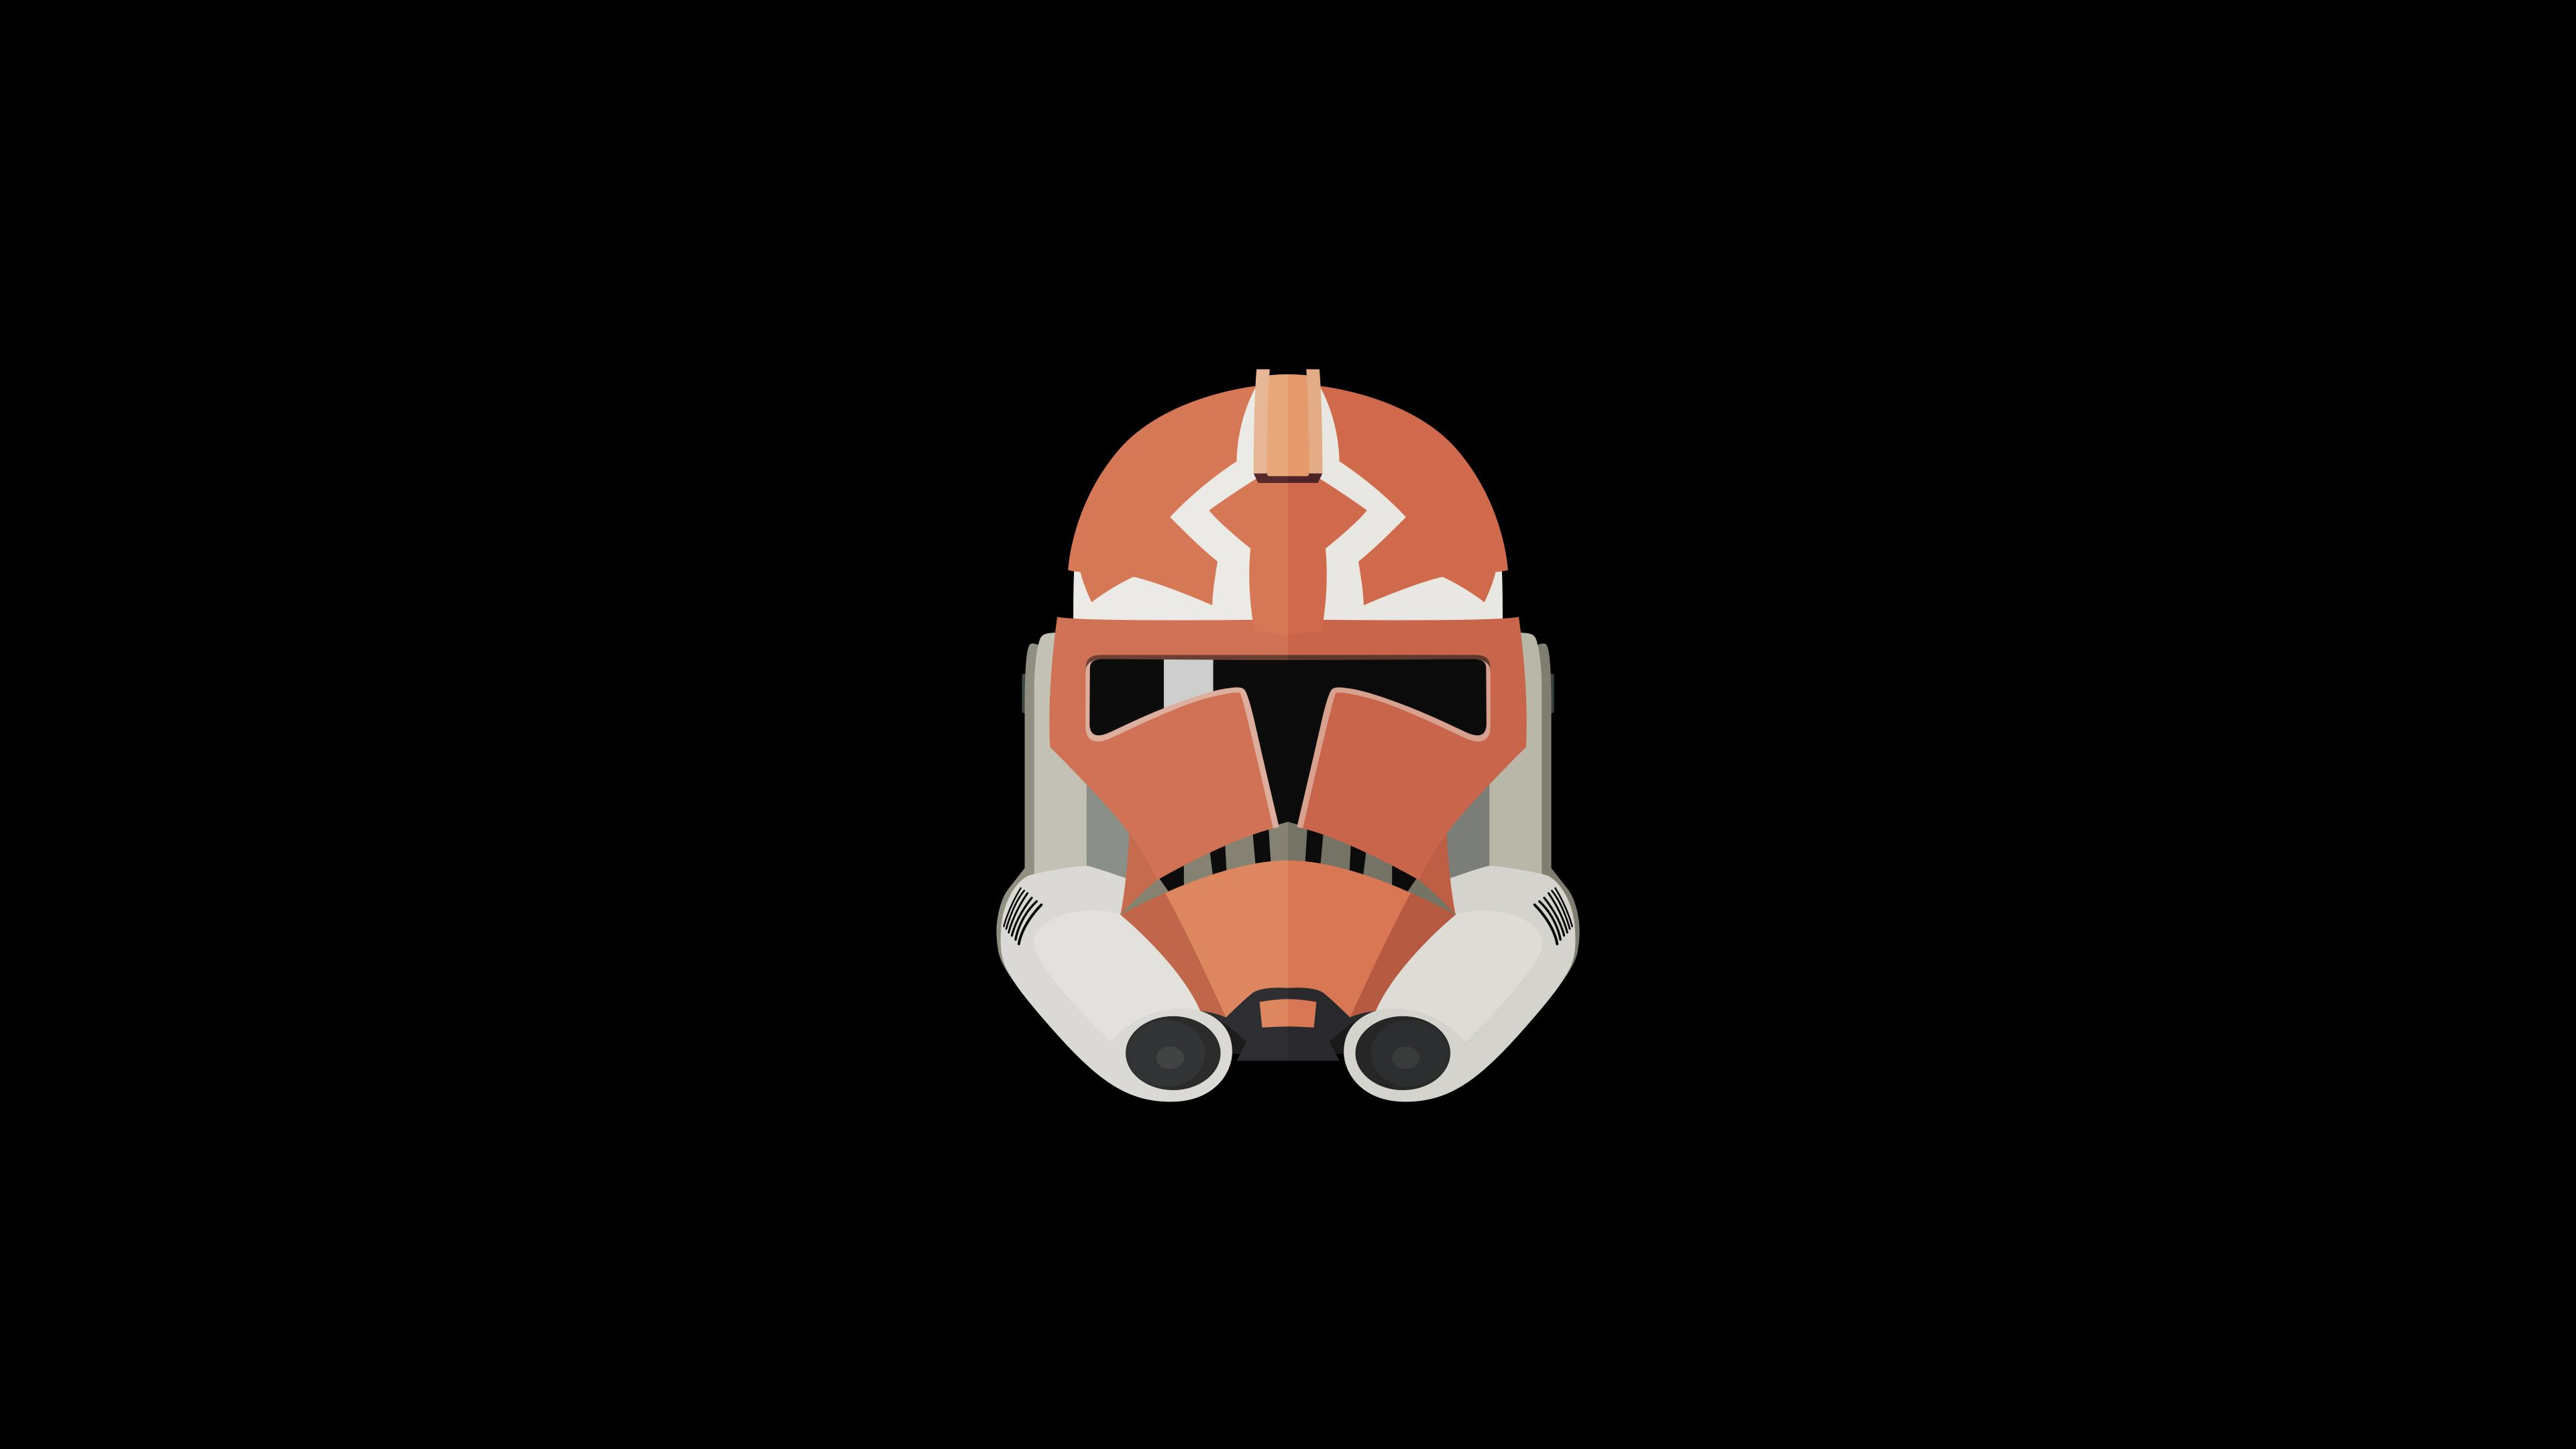 Star Wars Minimalist Wallpapers - Wallpaper Cave